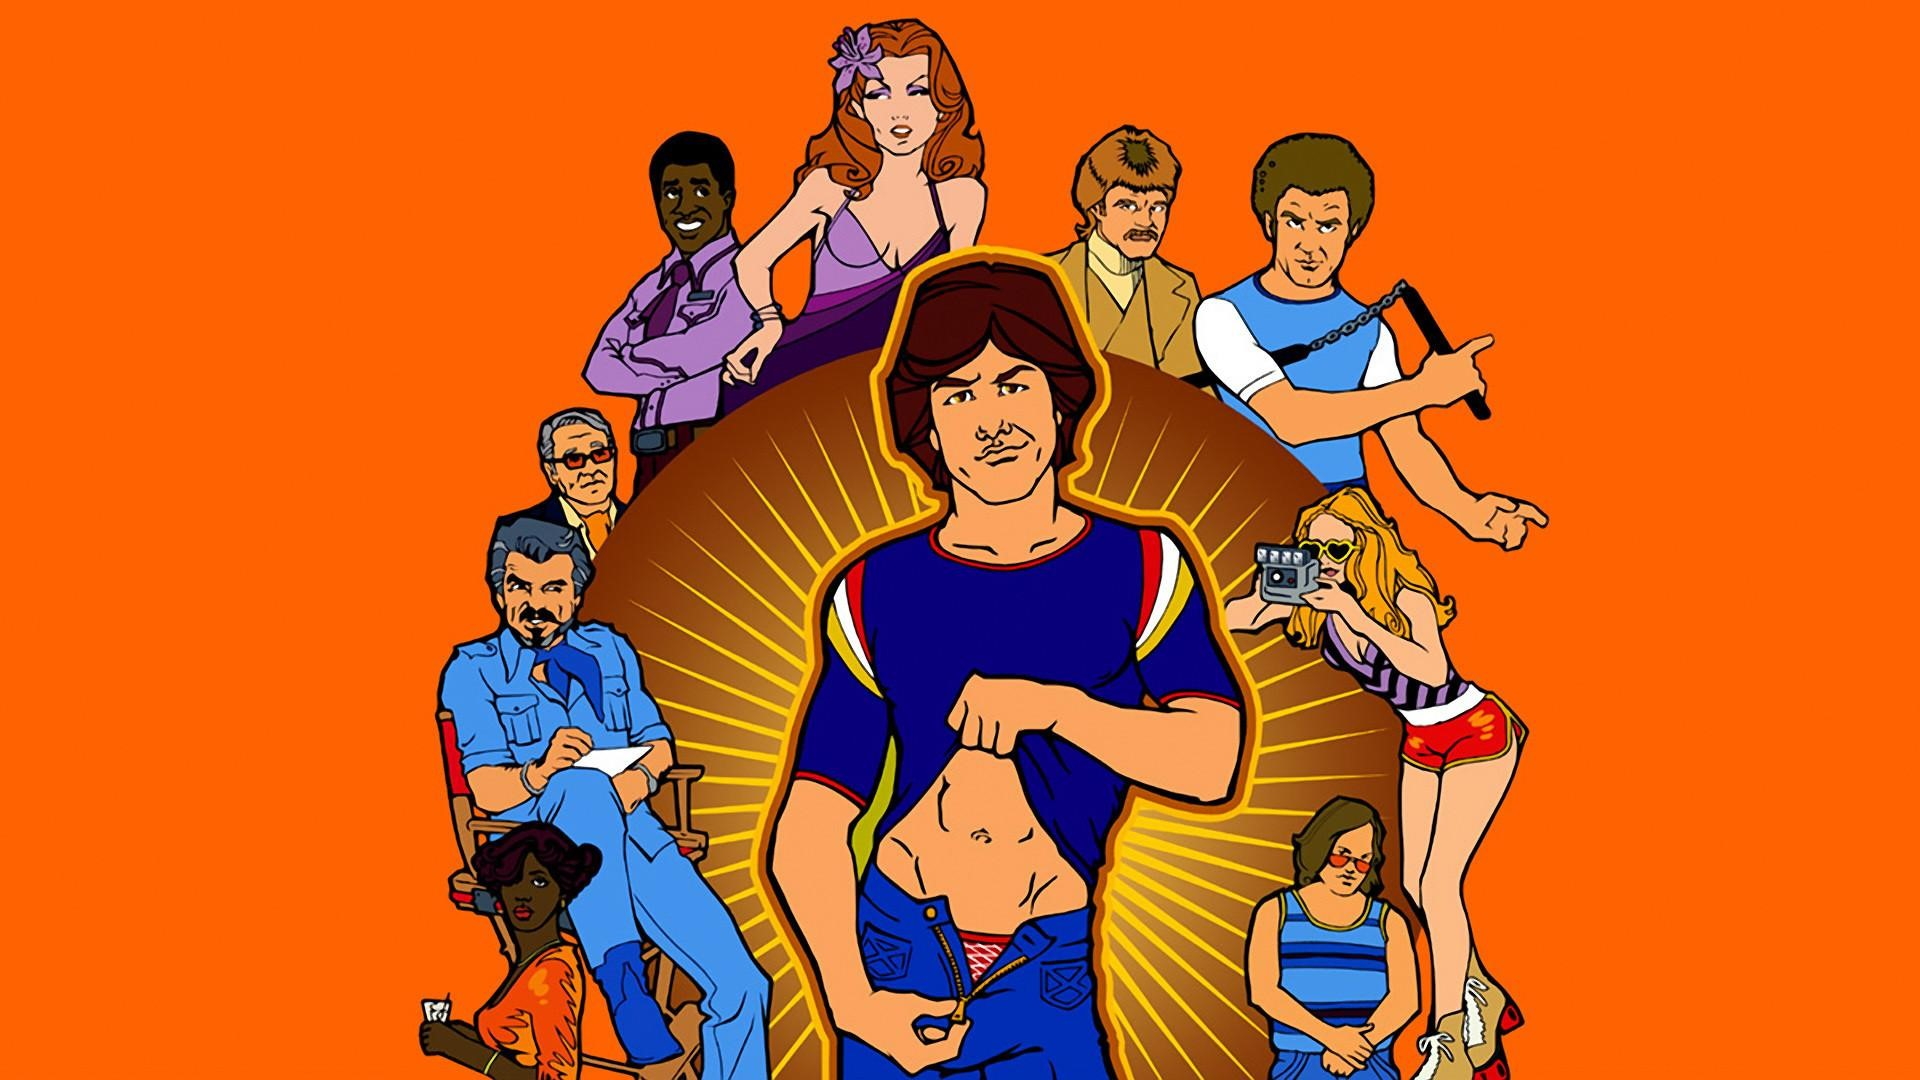 Best of Netflix: 'Boogie Nights' is a Paul Thomas Anderson classic